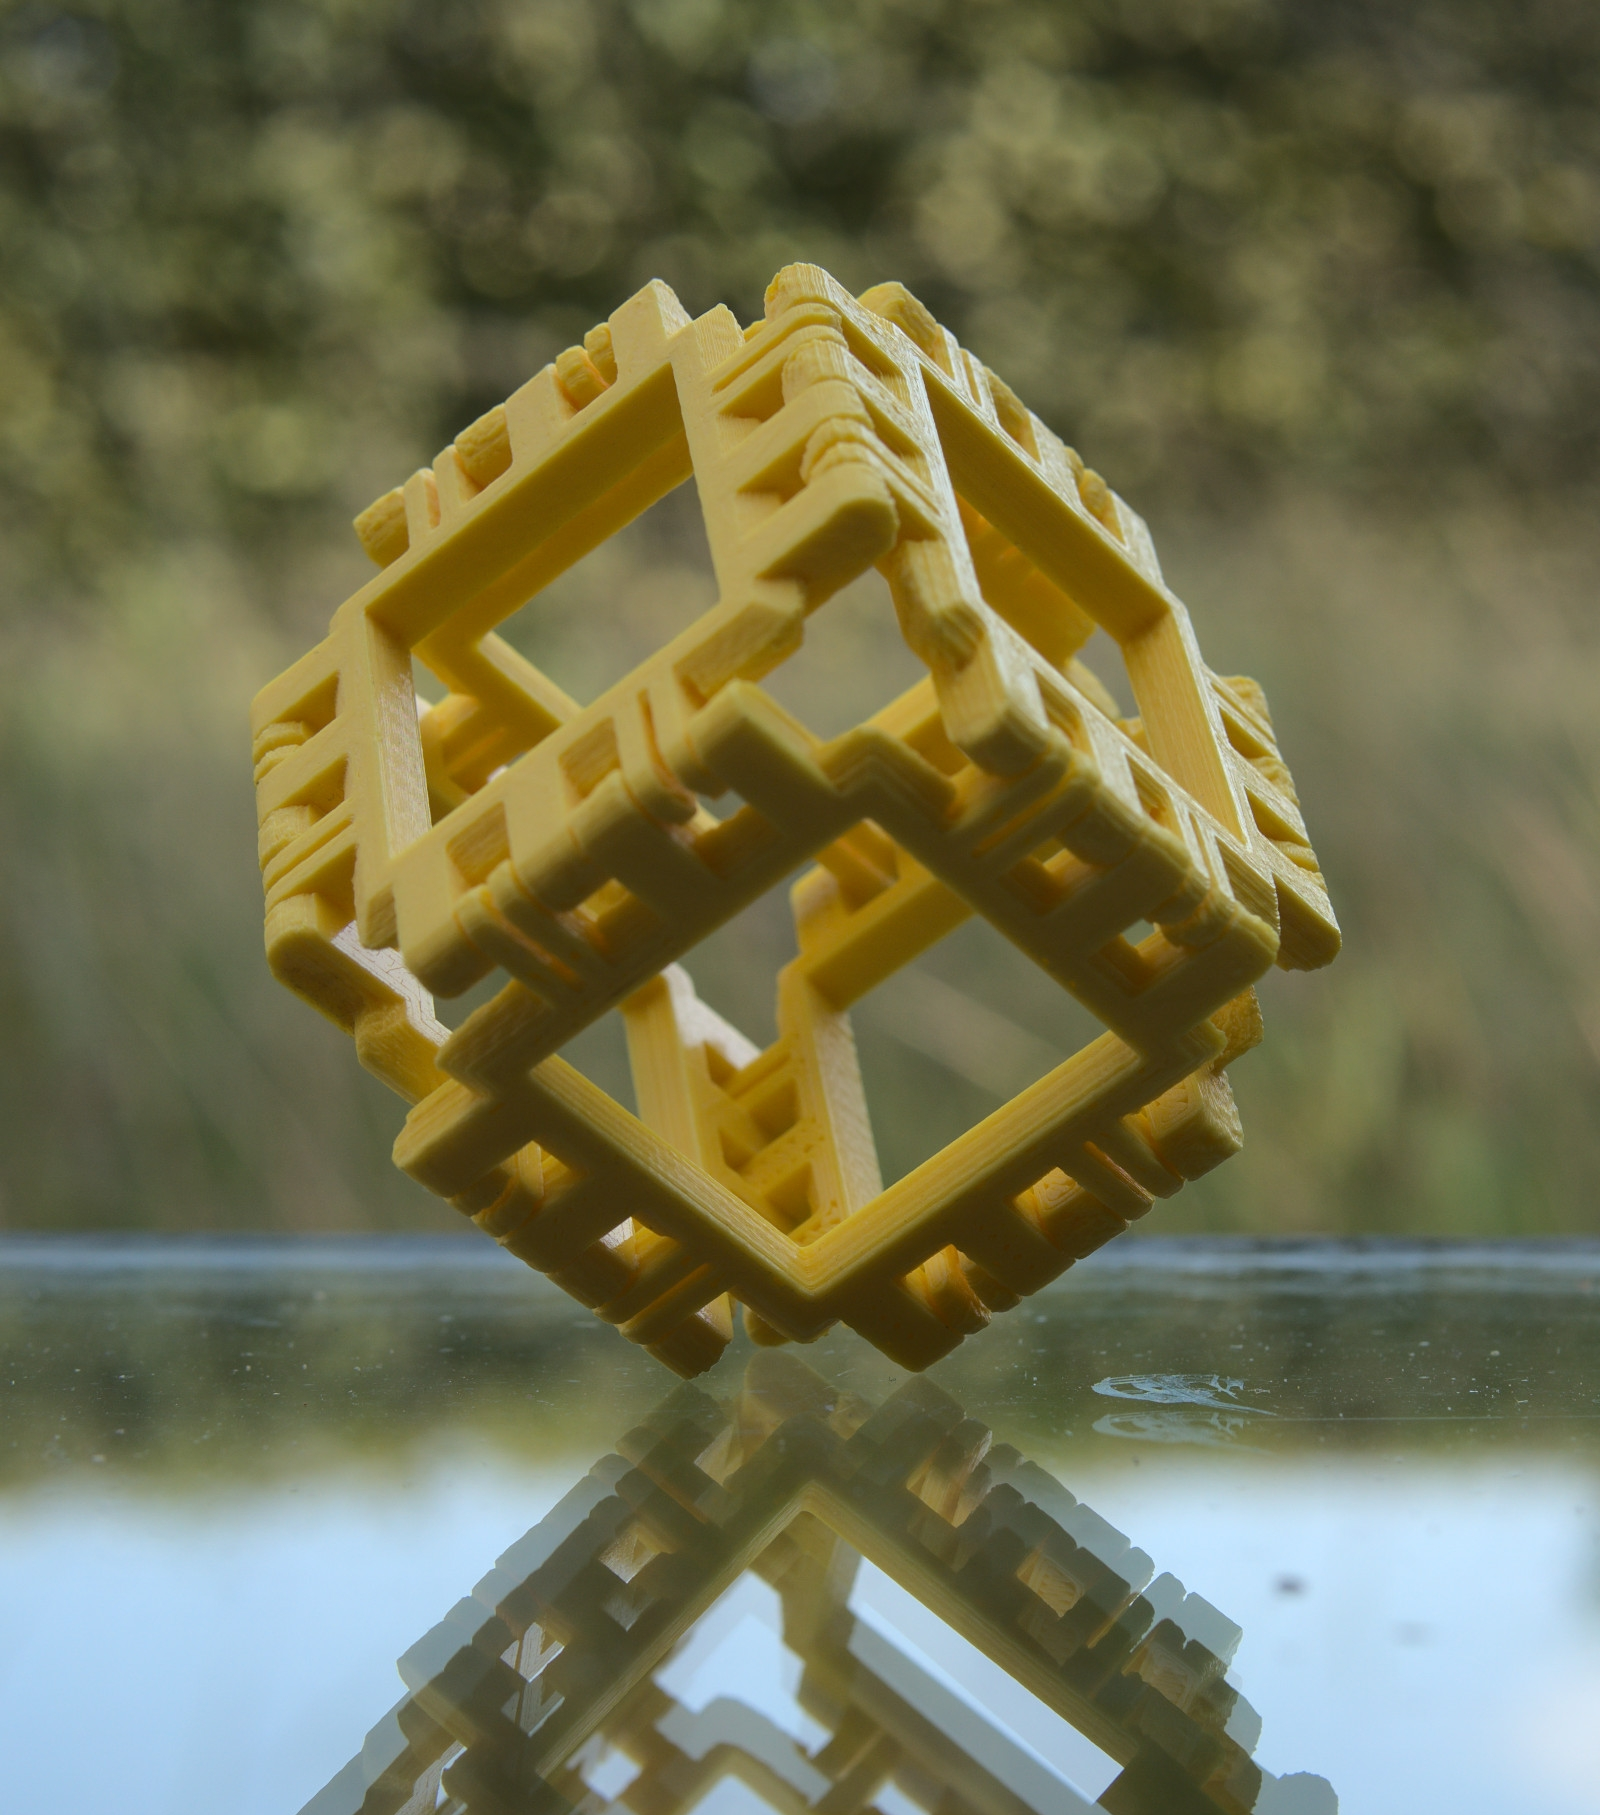 Cover image for article 'Cube (Hexahedron)'